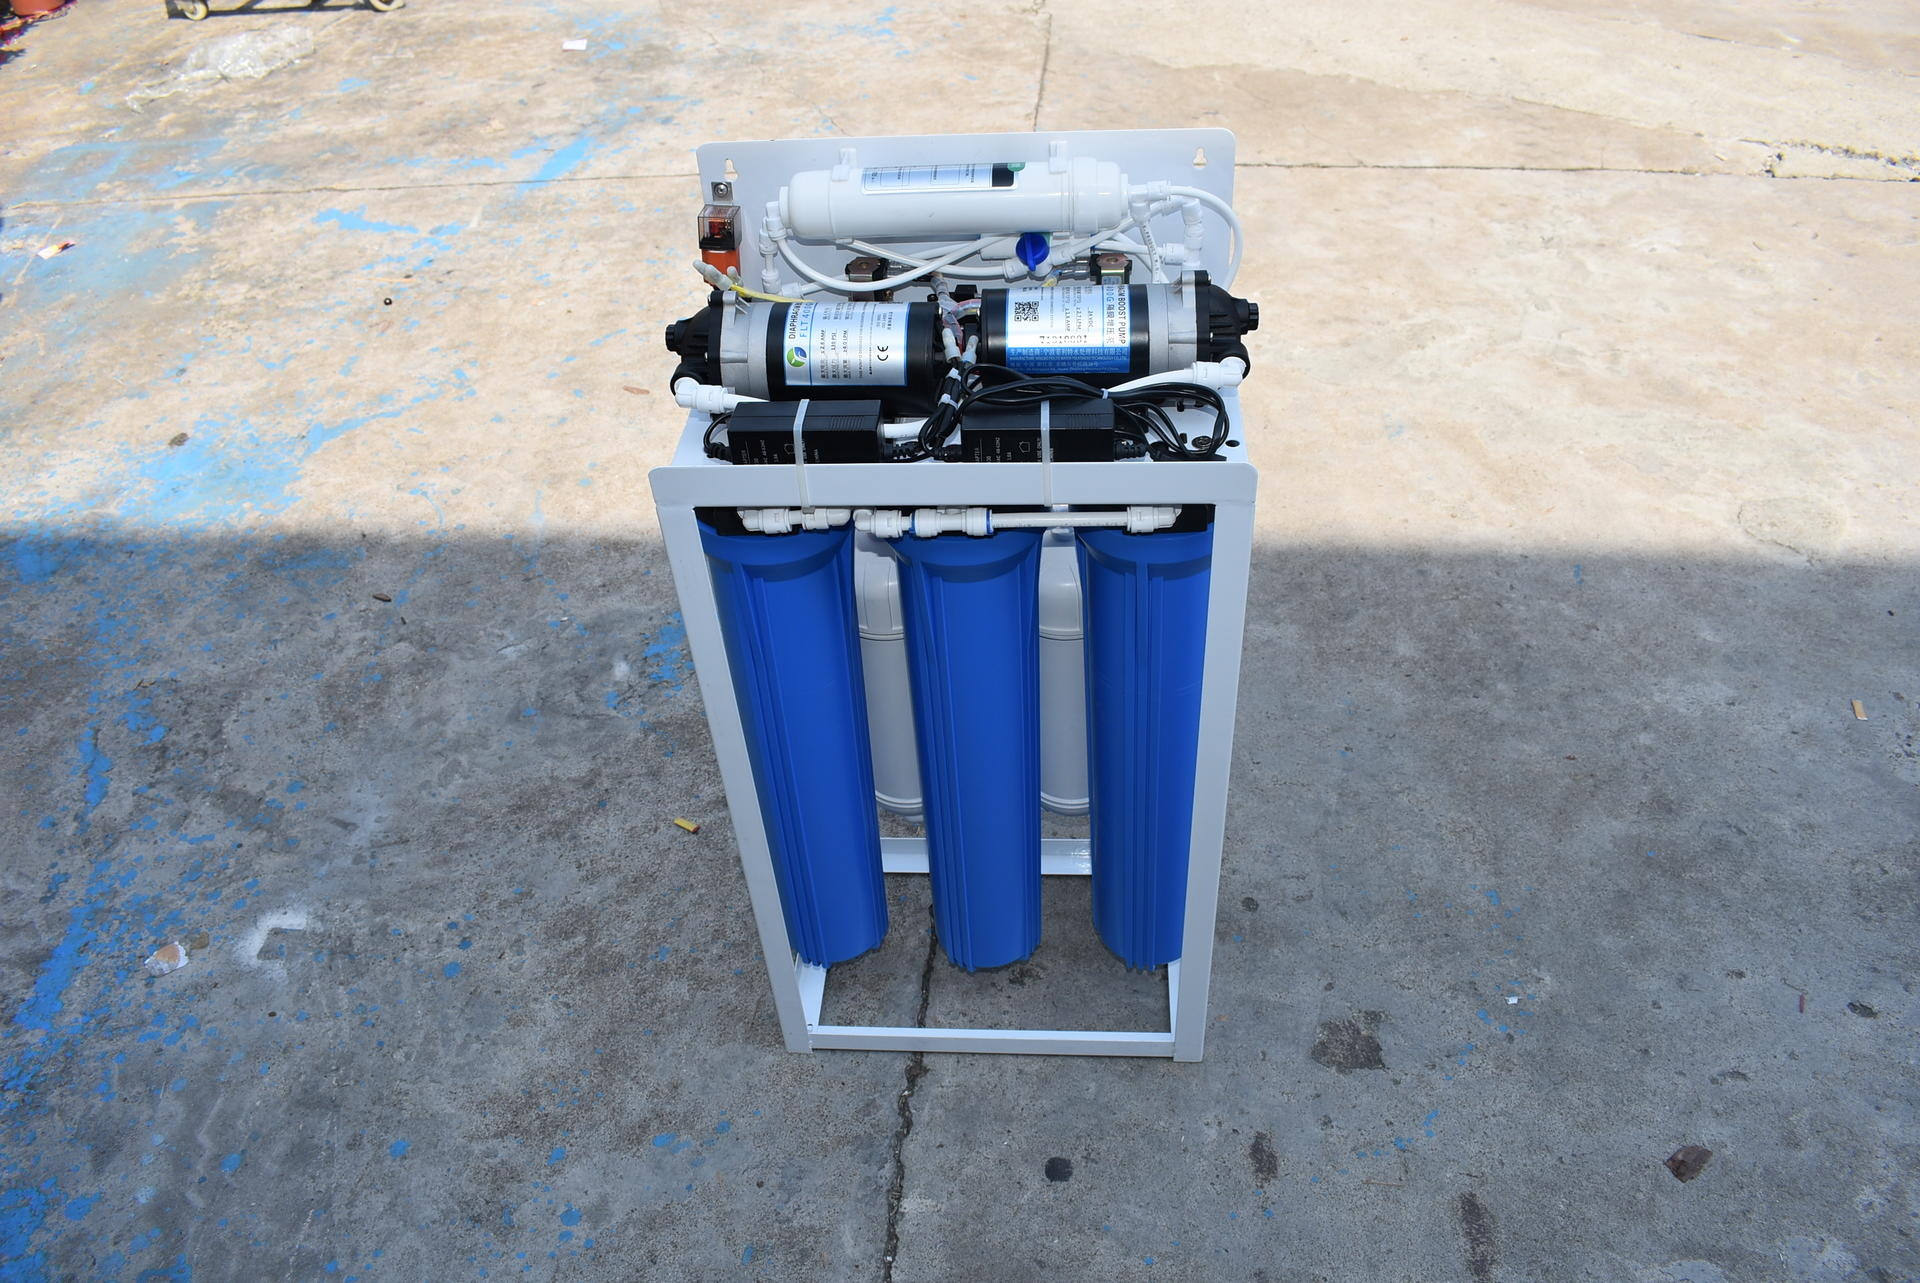 Commercial Reverse Osmosis Water Purifier 800Gpd System Portable Reverse Osmosis Water Treatment For Drinking Water